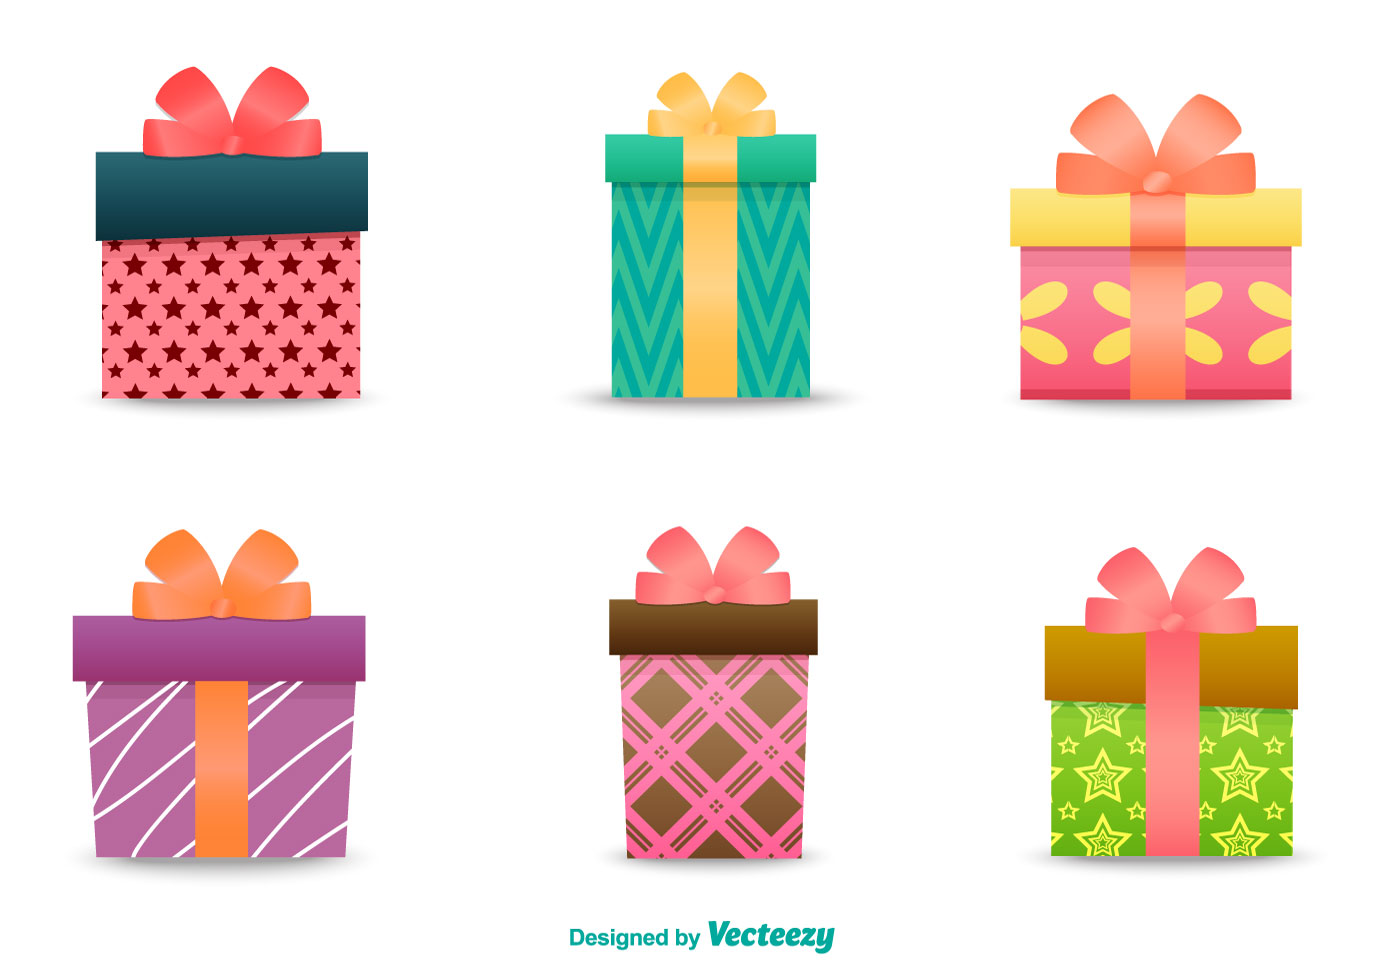 ... box illustrations - Download Free Vector Art, Stock Graphics & Images